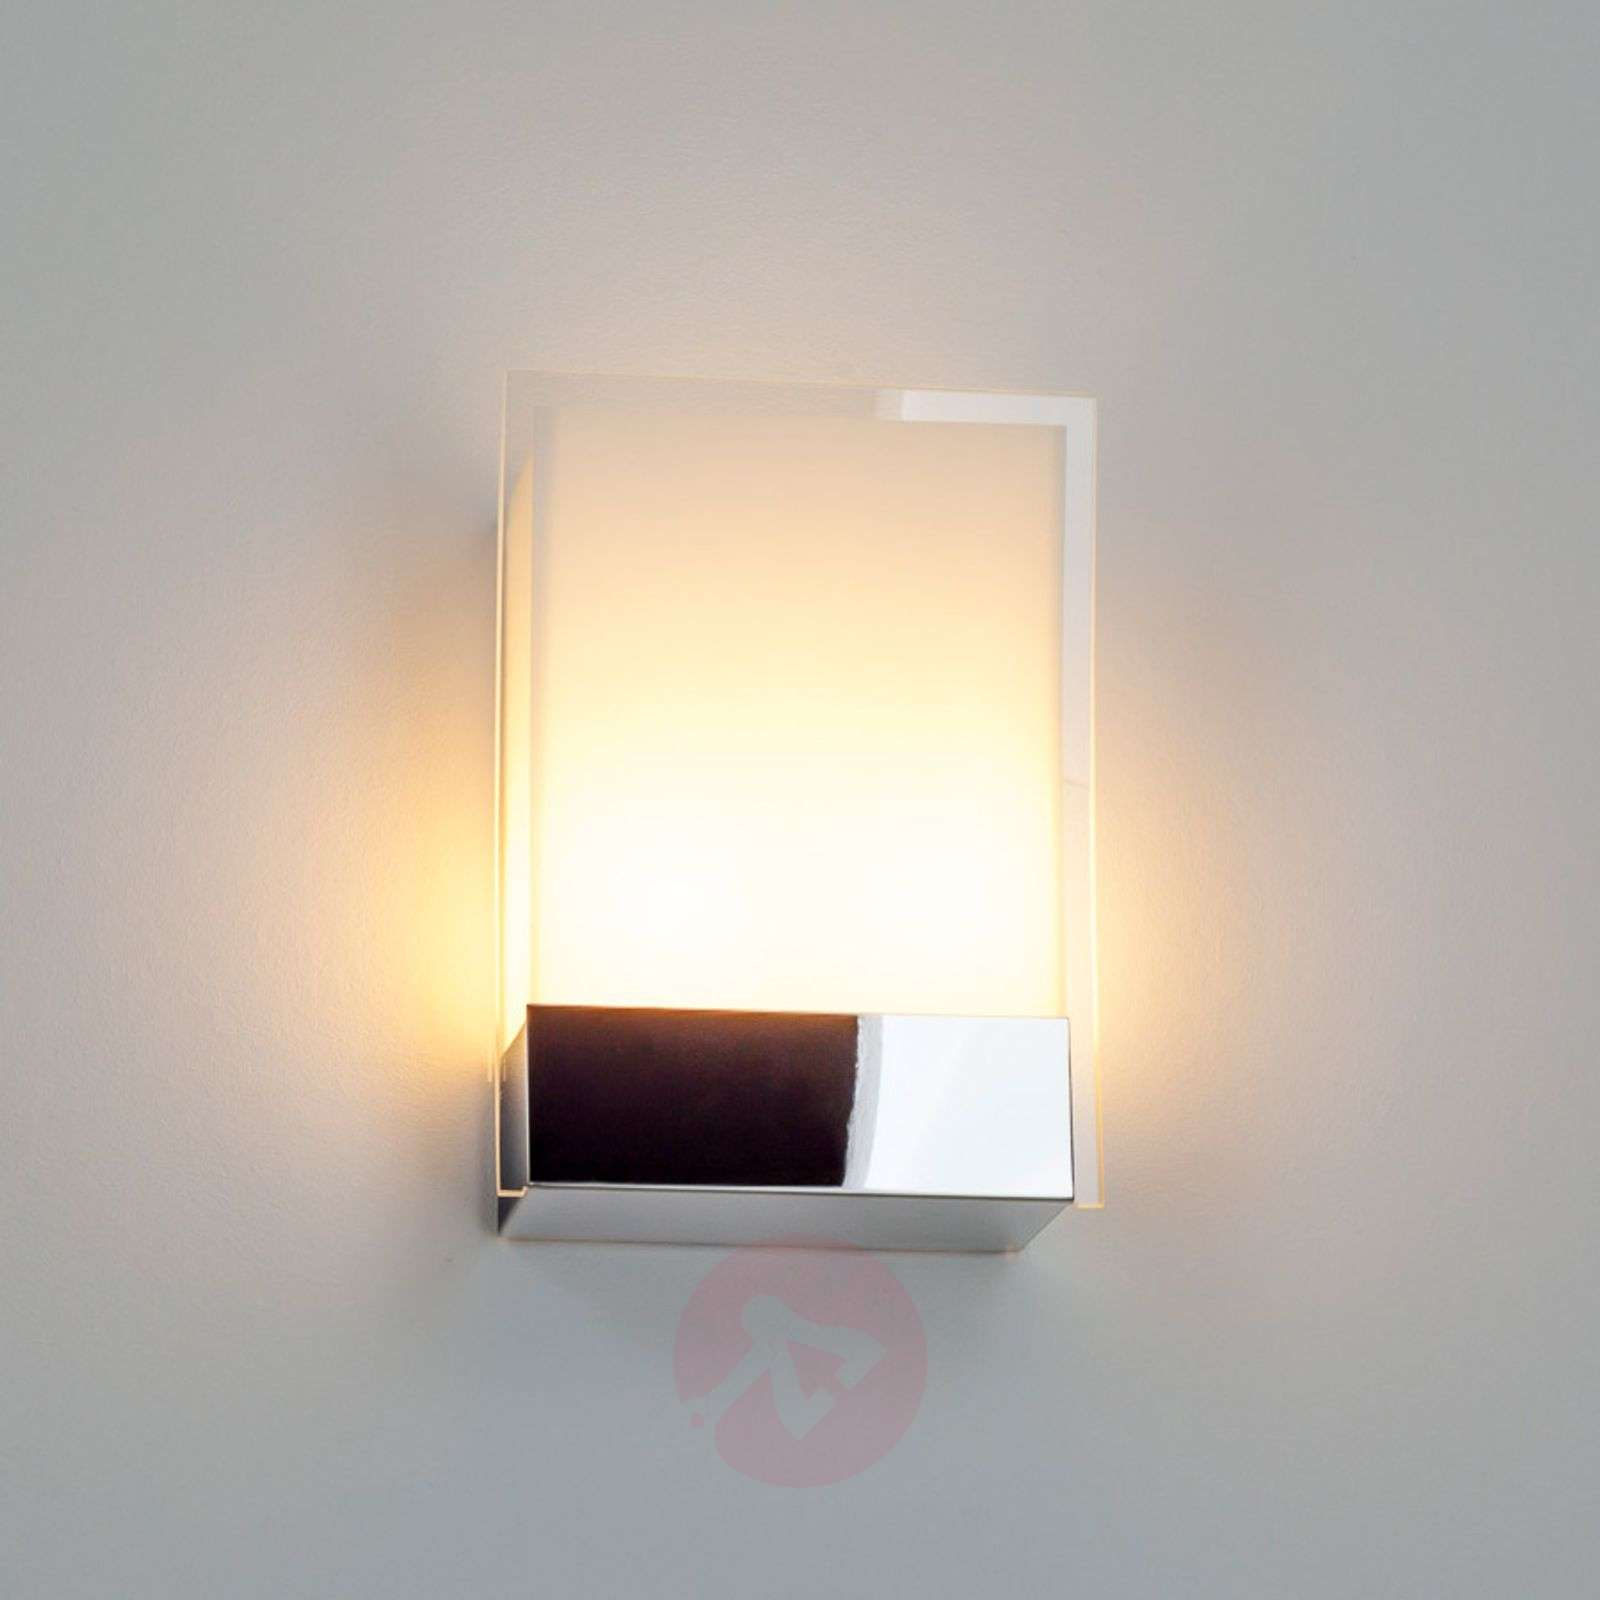 Malthe Modern Wall Lamp made of Glass and Metal-9633020-01